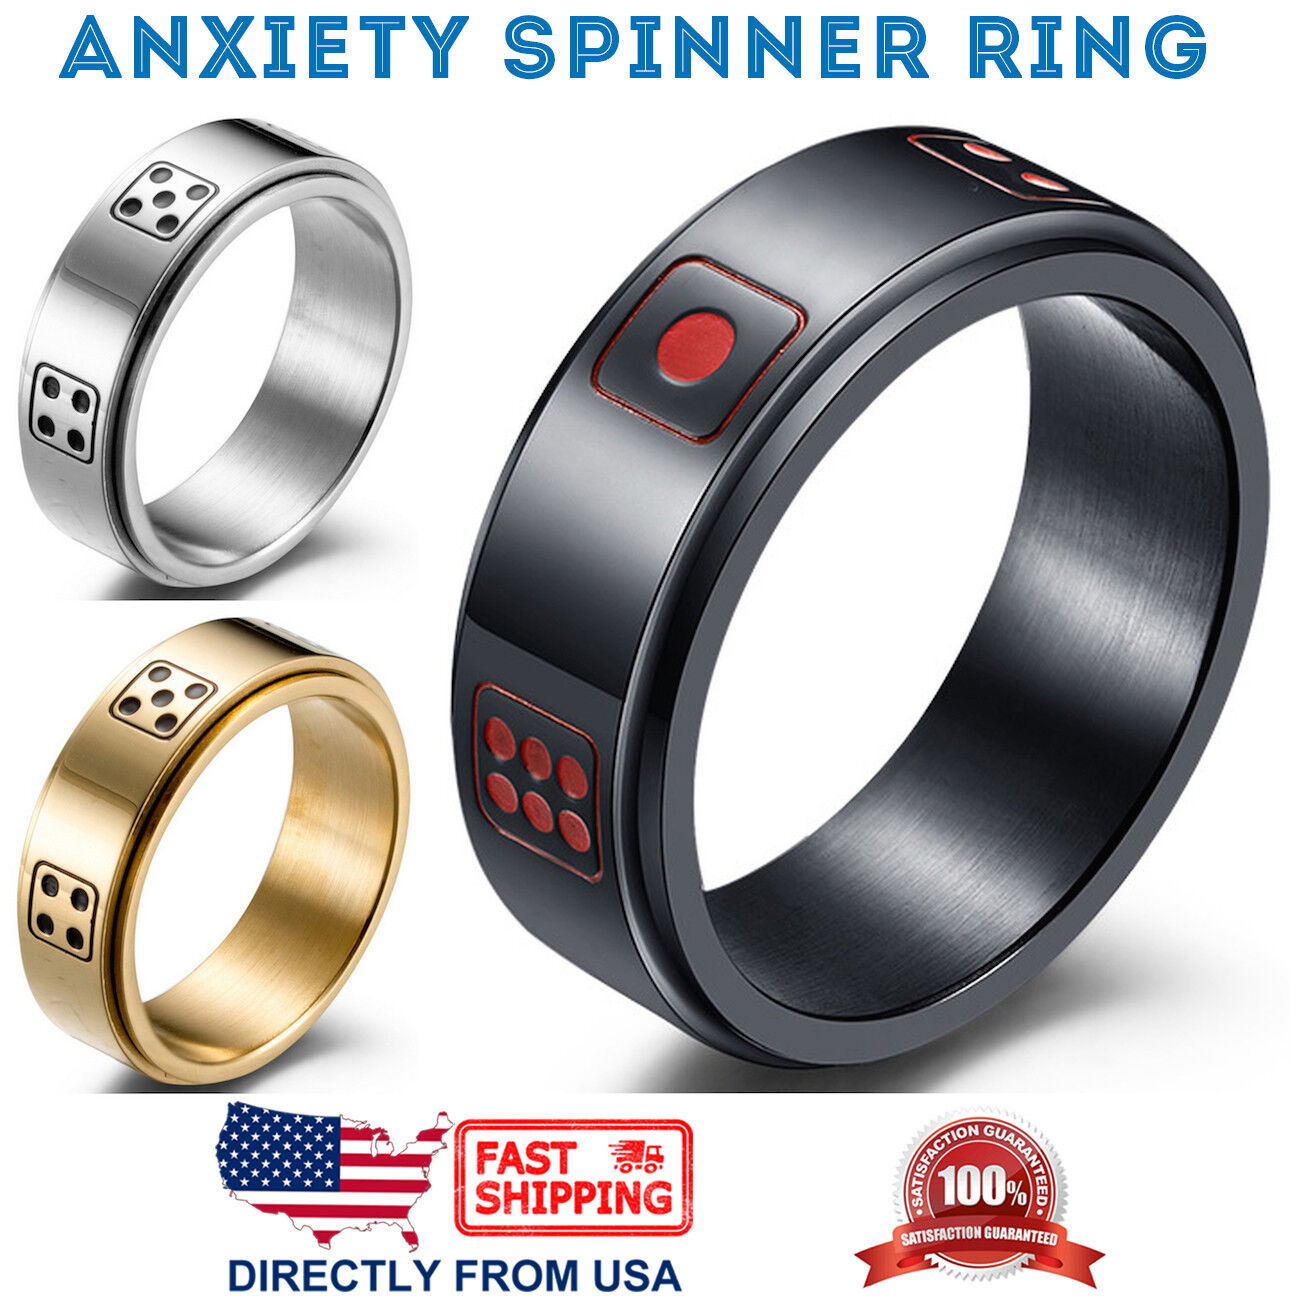 Men's Stainless Steel Wedding Band 8mm Dice Anxiety Spinner Ring Jewelry & Watches